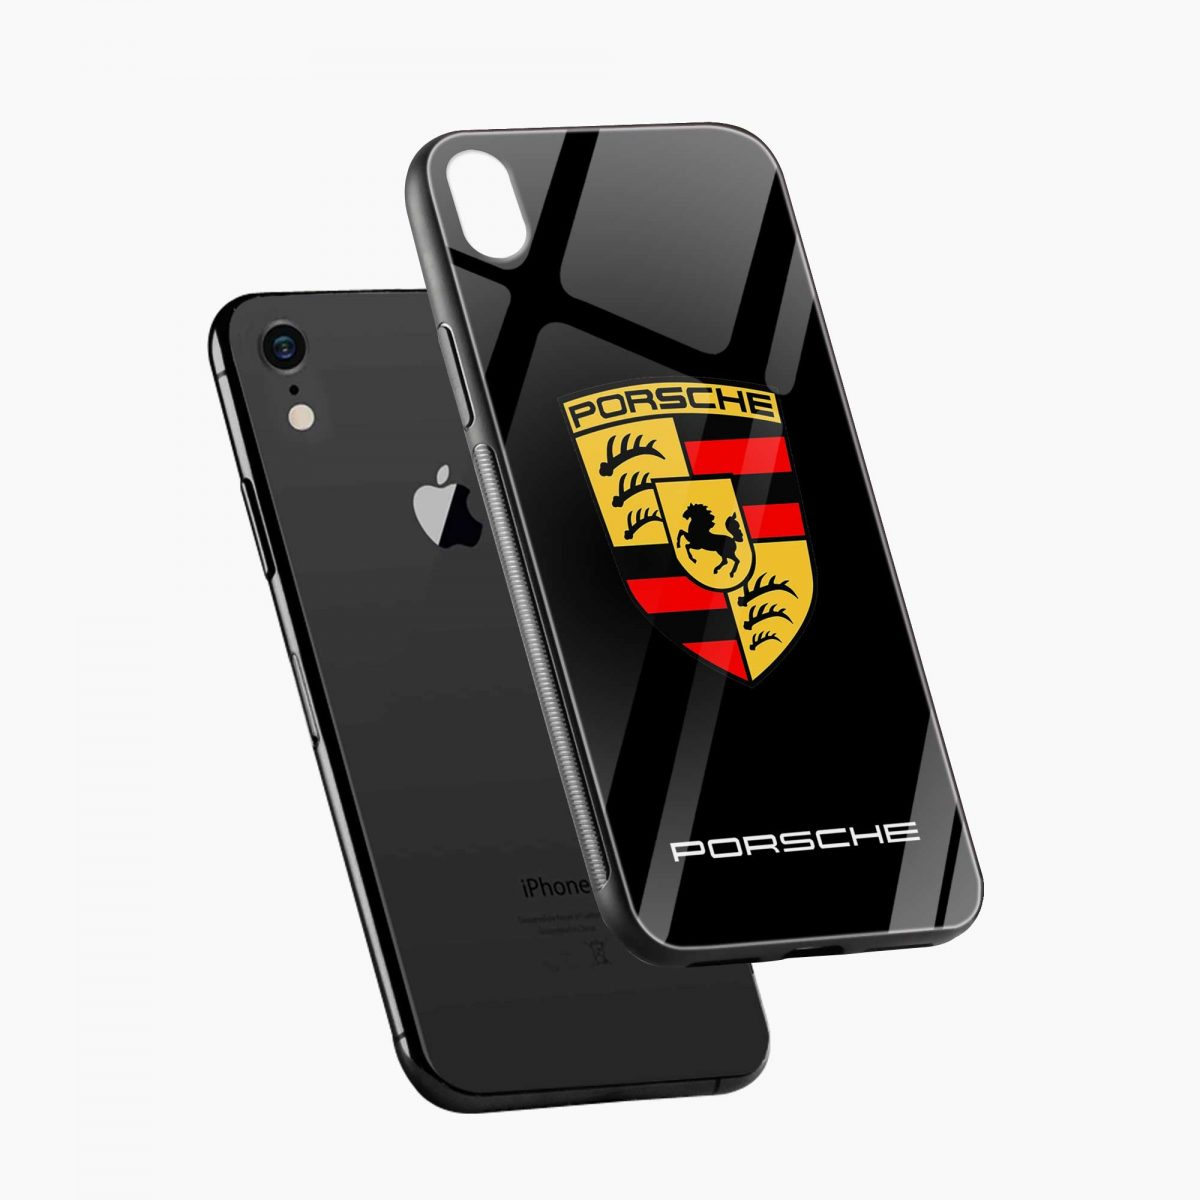 prosche apple iphone xr back cover diagonal view